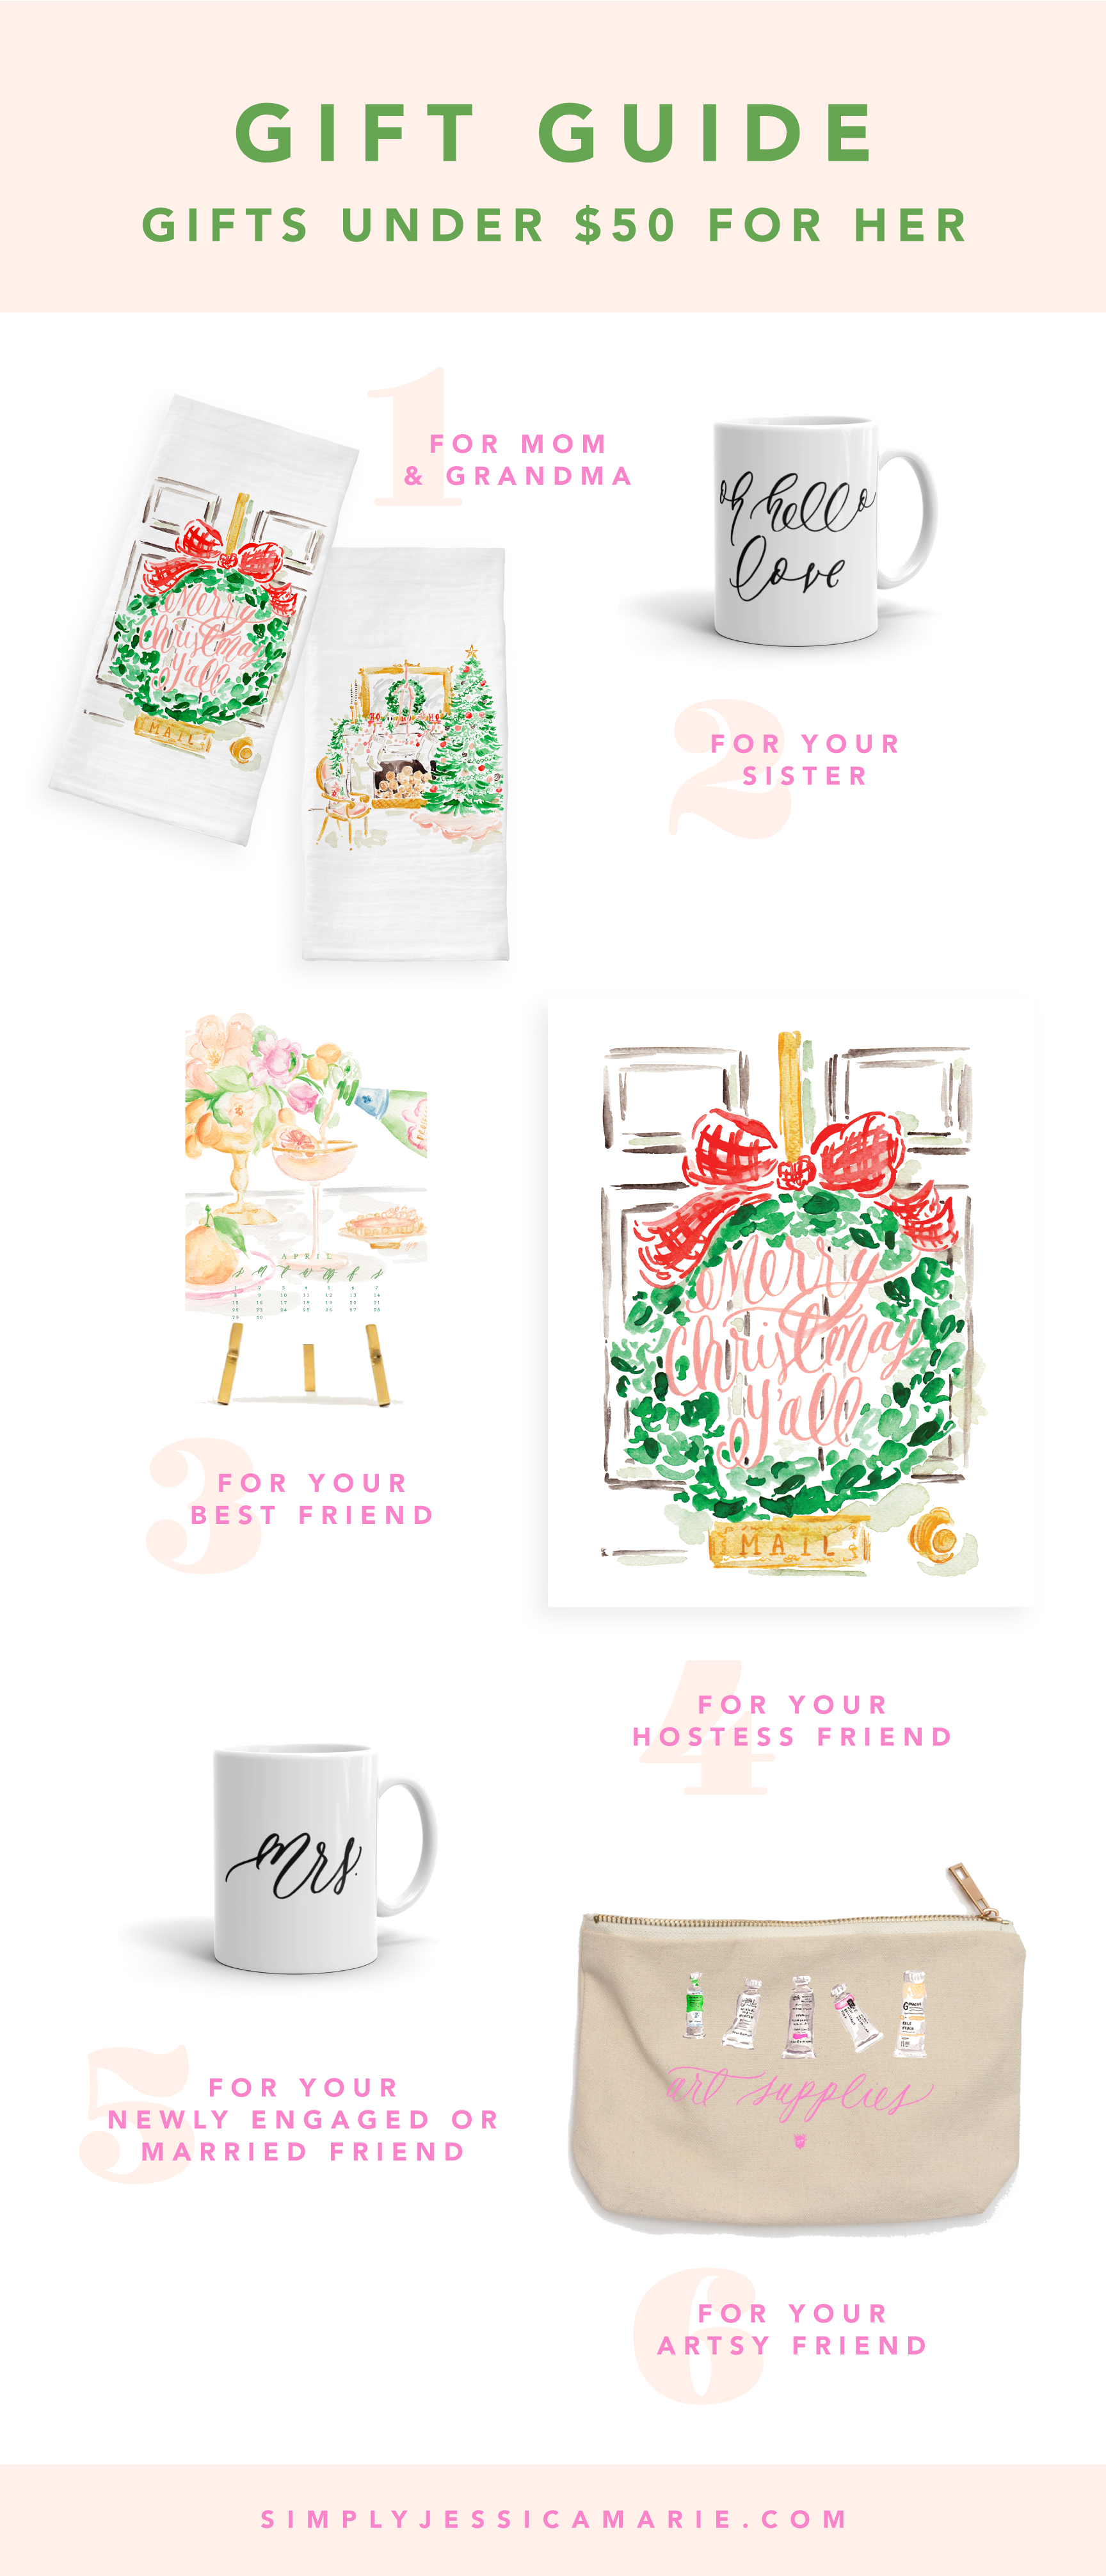 Gift Guide - Gifts Under $50 For Her | Simply Jessica Marie